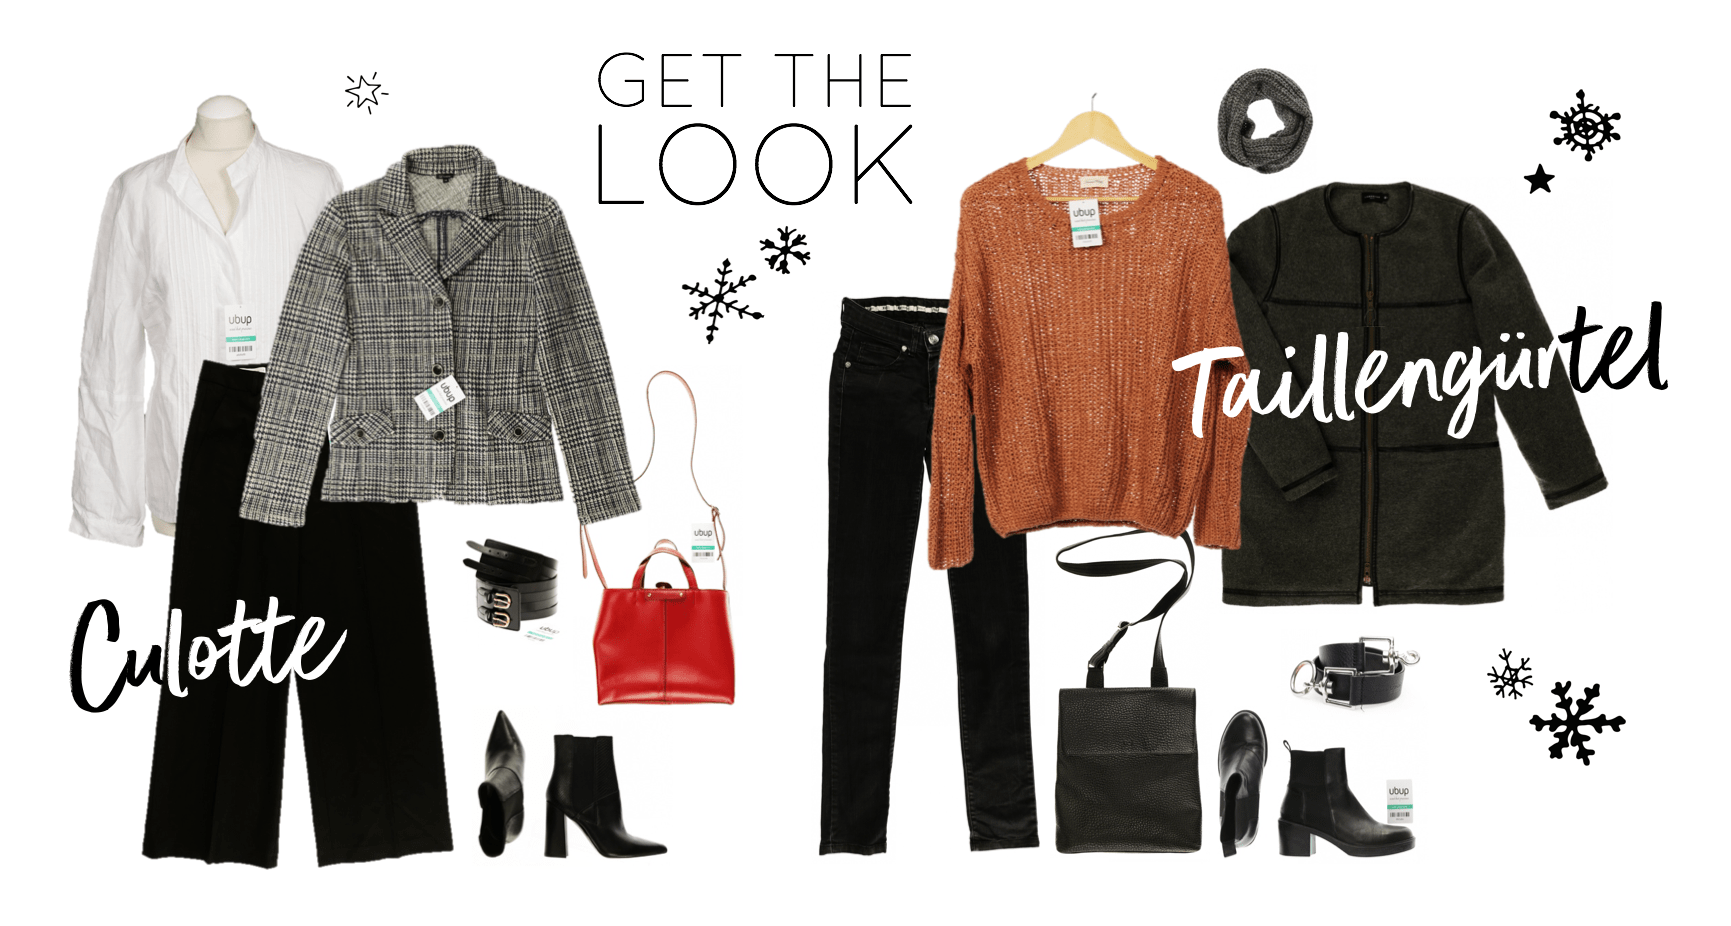 Winter-Trends 2017 - Get the Look